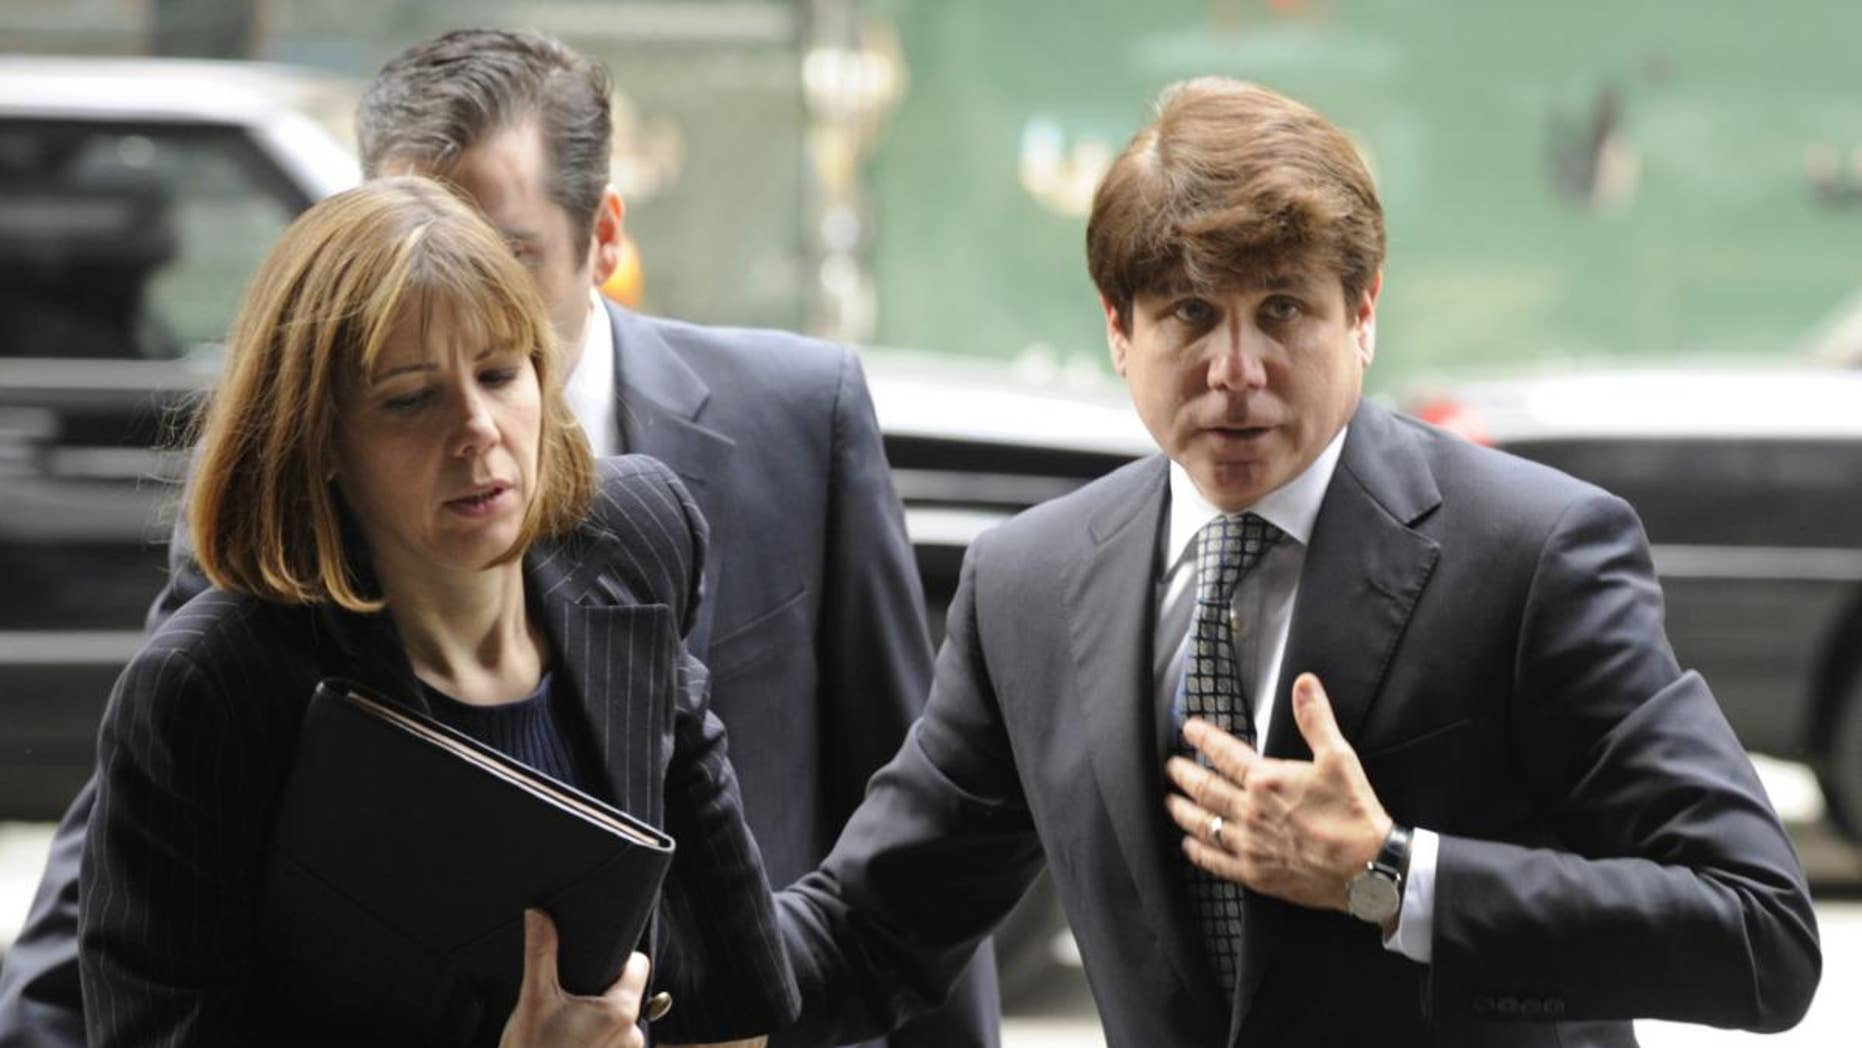 Former Illinois Gov. Rod Blagojevich and his wife Patti Blagojevich arrive at federal court for final jury selection and opening arguments in his second corruption trial, Monday, May 2, 2011, in Chicago. (AP Photo/Paul Beaty)